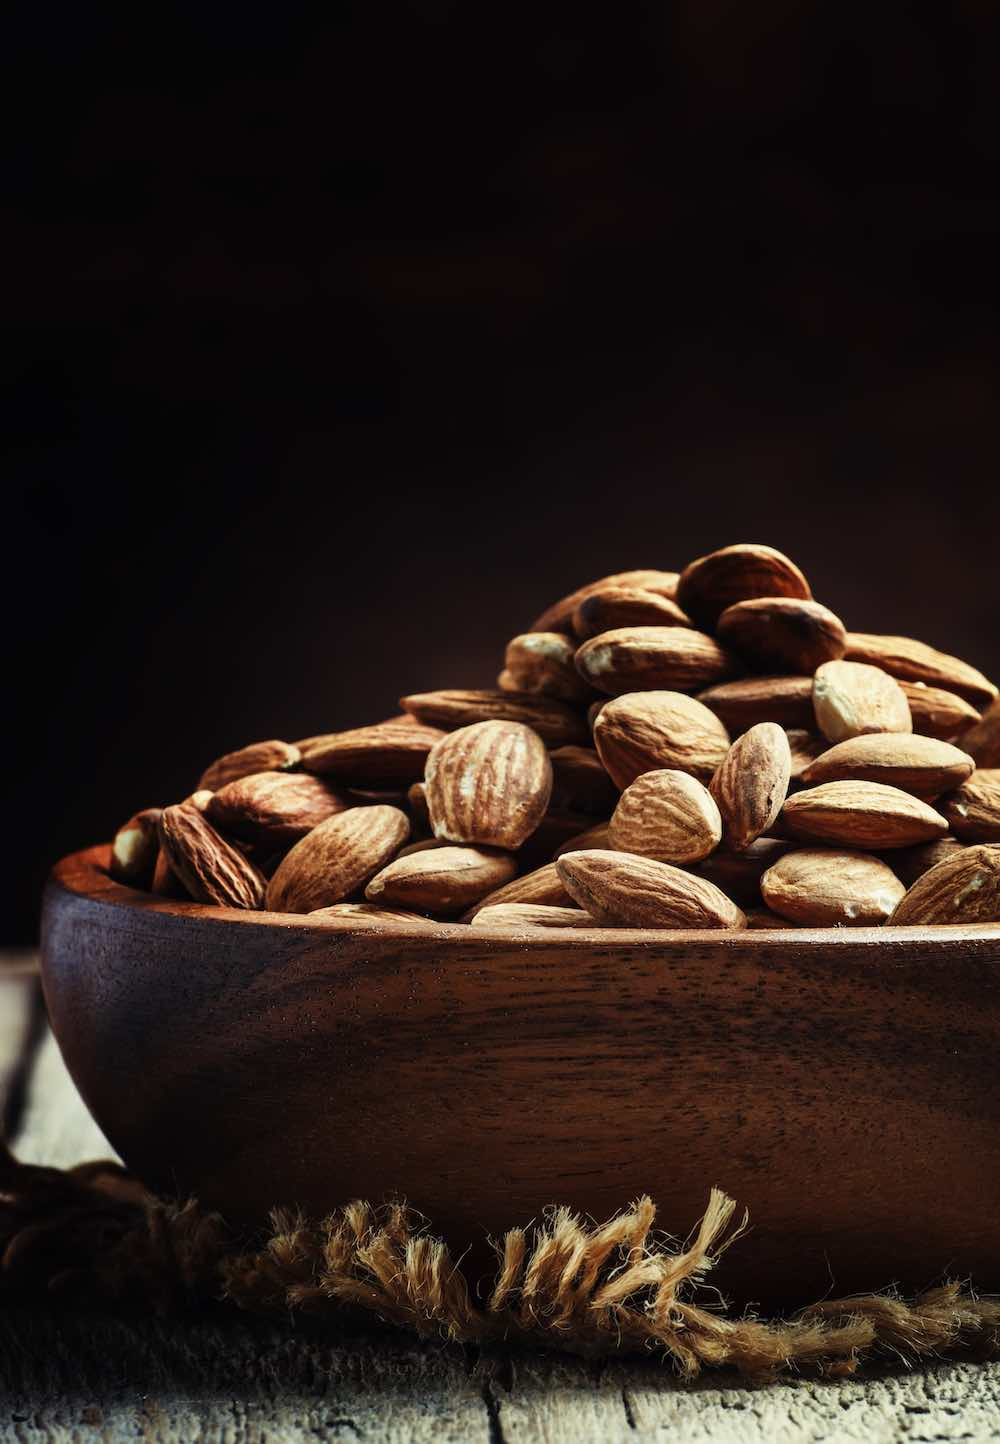 arty shot of a bowl of almonds